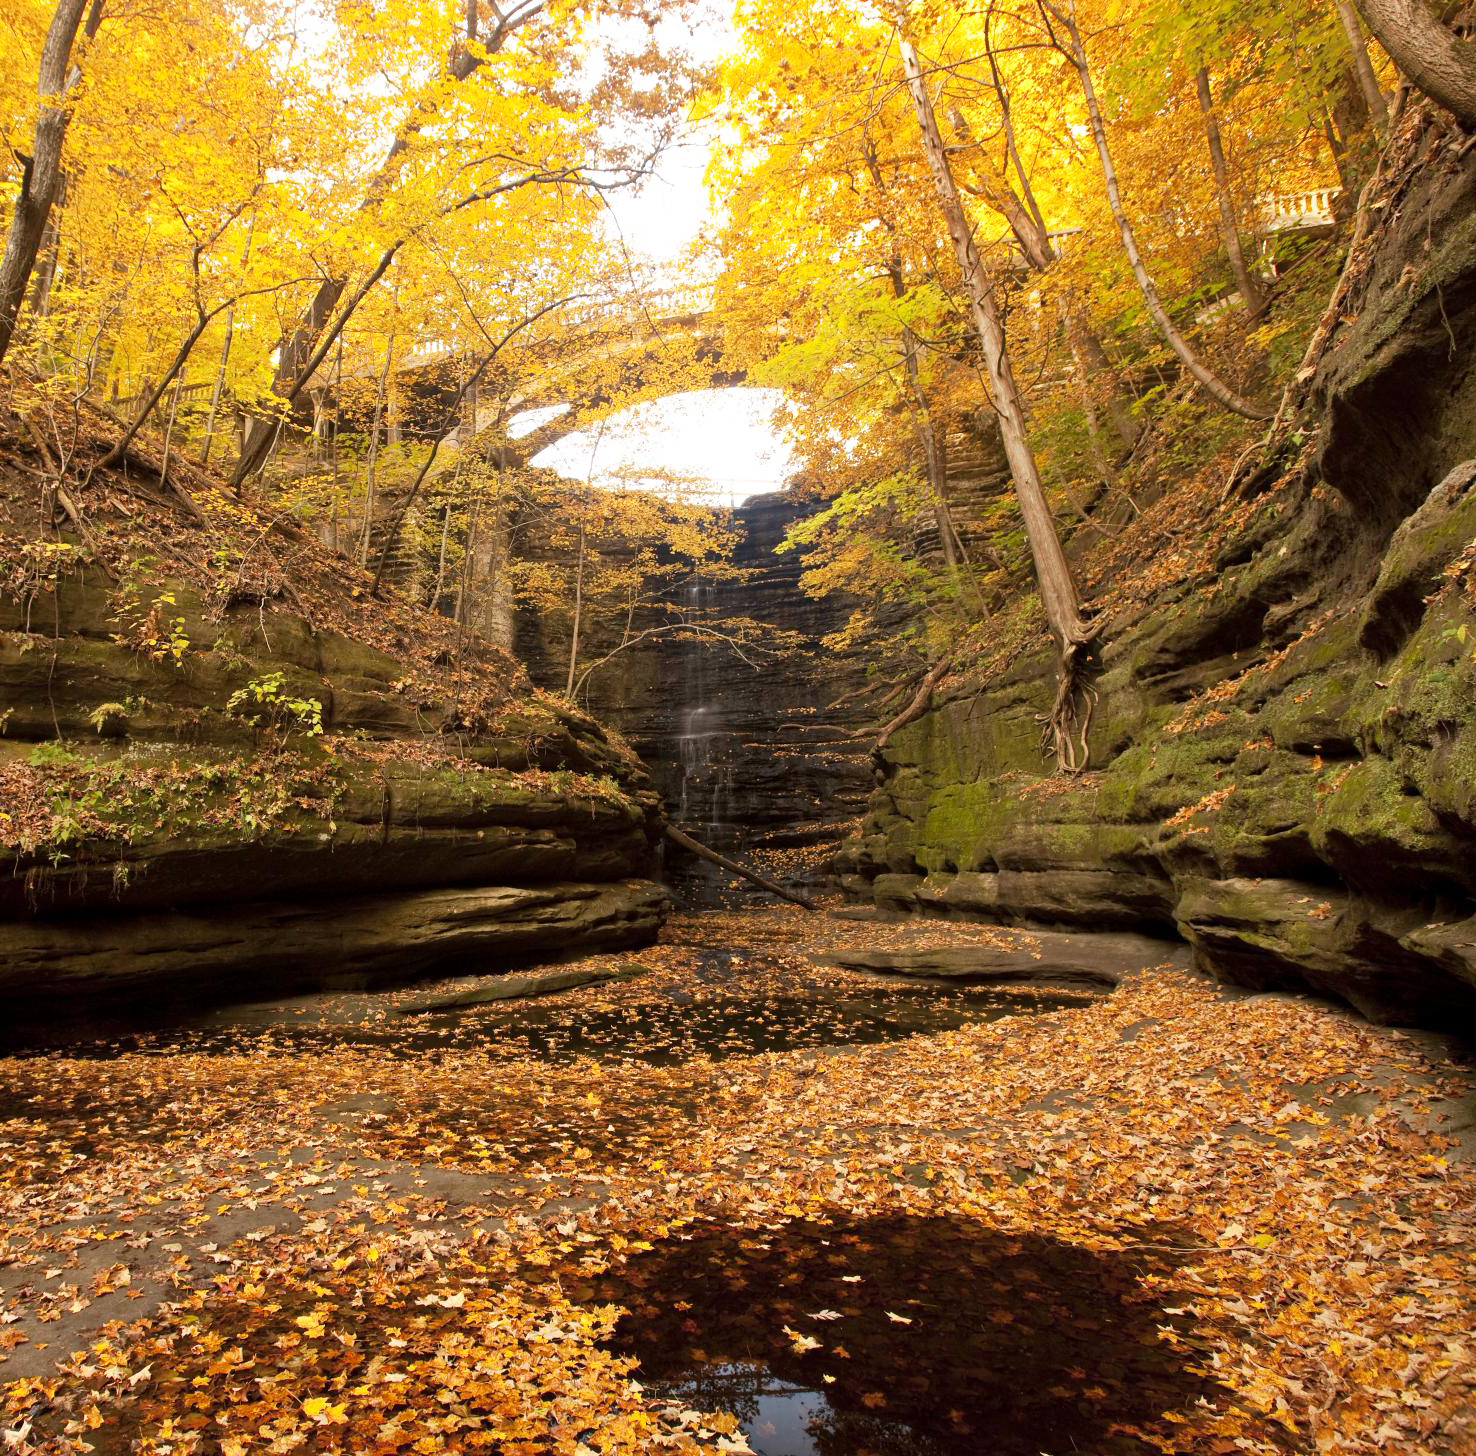 Illinois: Illinois River Road National Scenic Byway